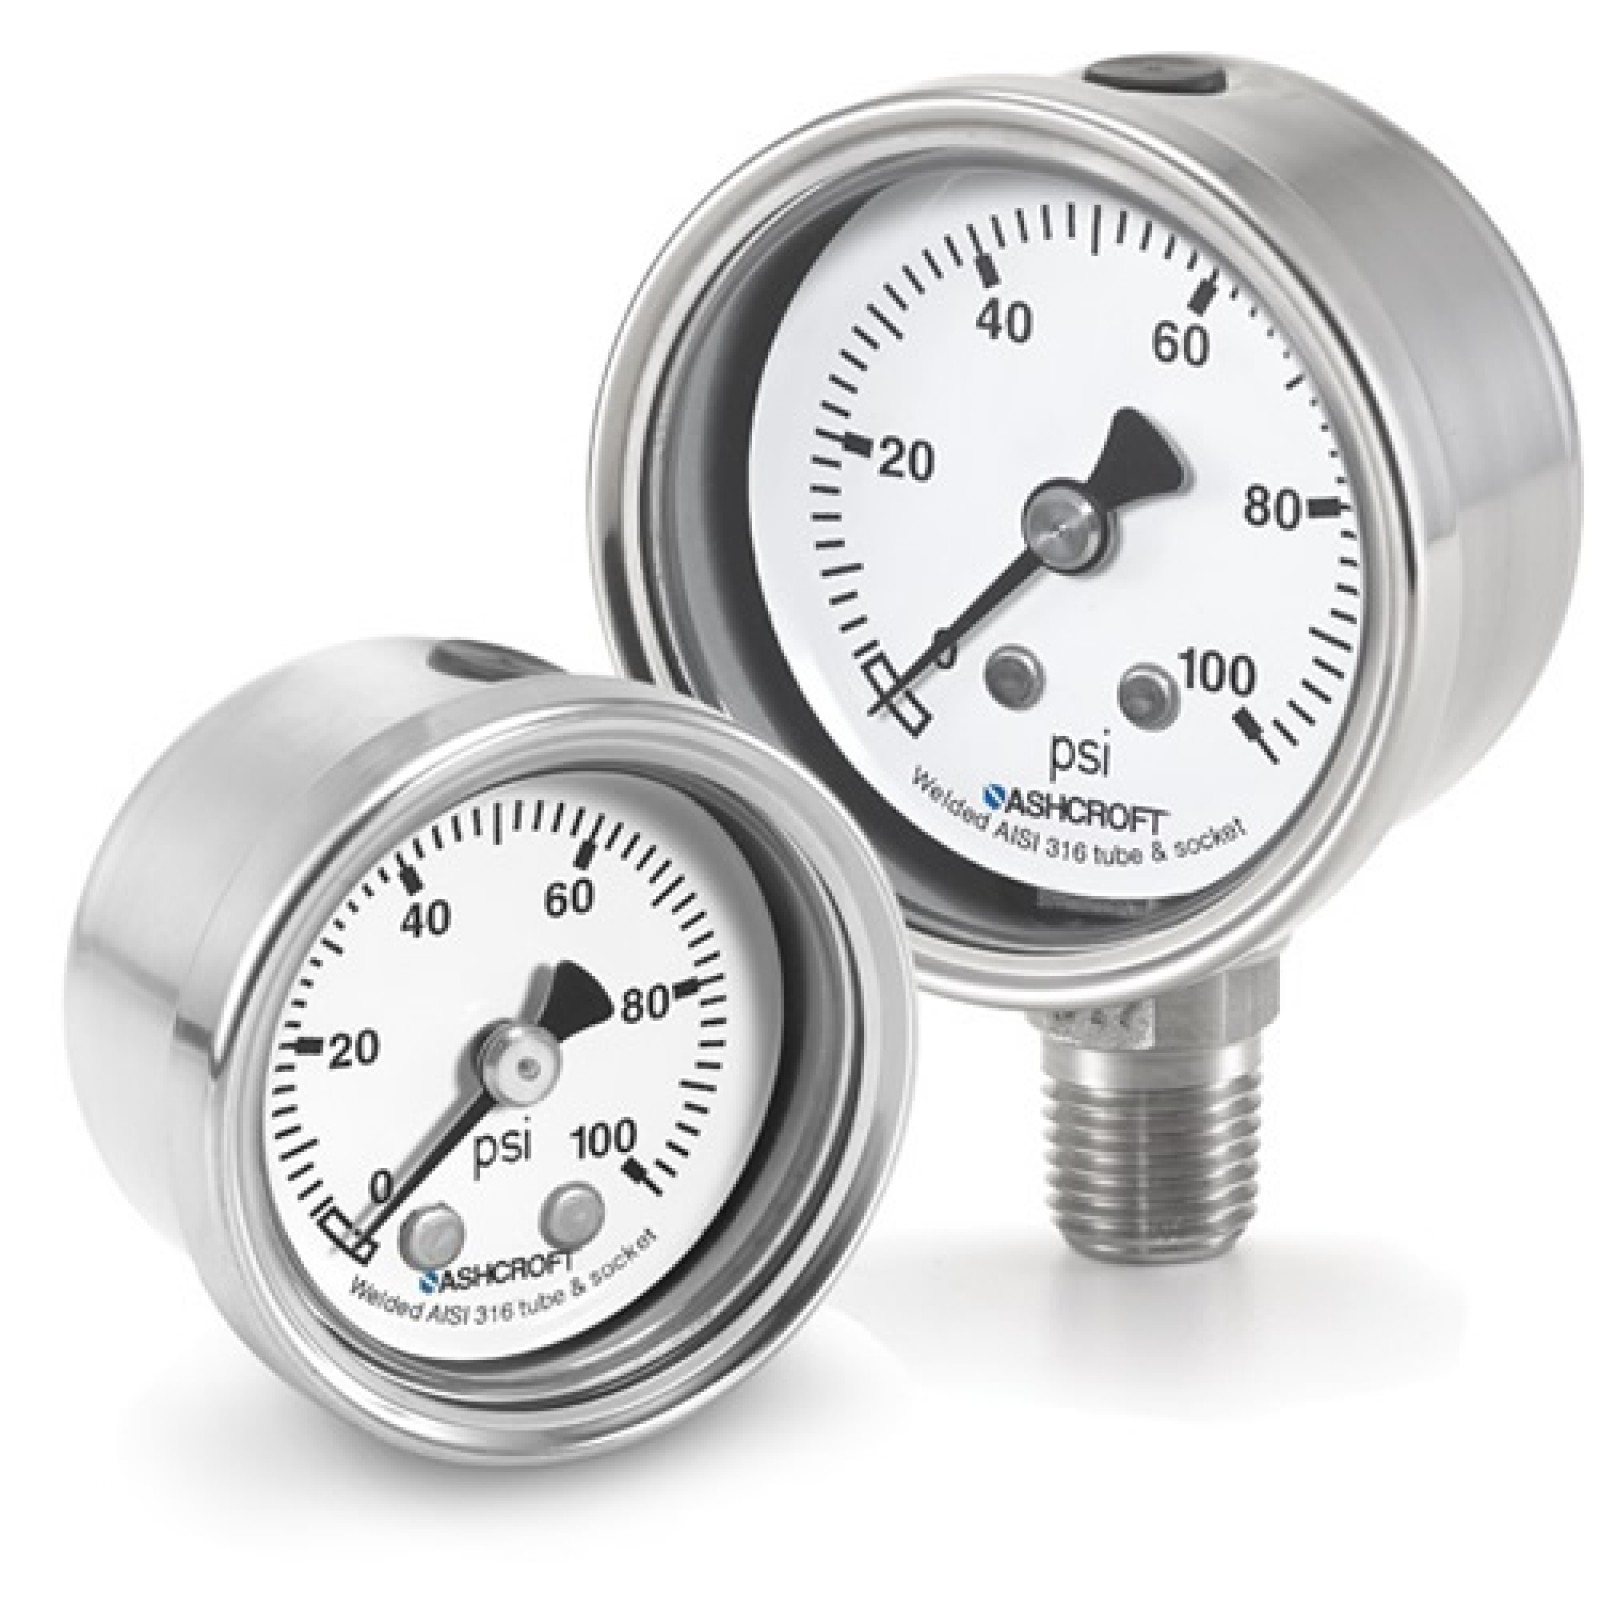 "63 1008S 02B XLL 6000#/KP - Pressure Gauge, 63mm stainless 1/4"" NPT Back conn & Case, Plus Performance, 0/6000 psi"